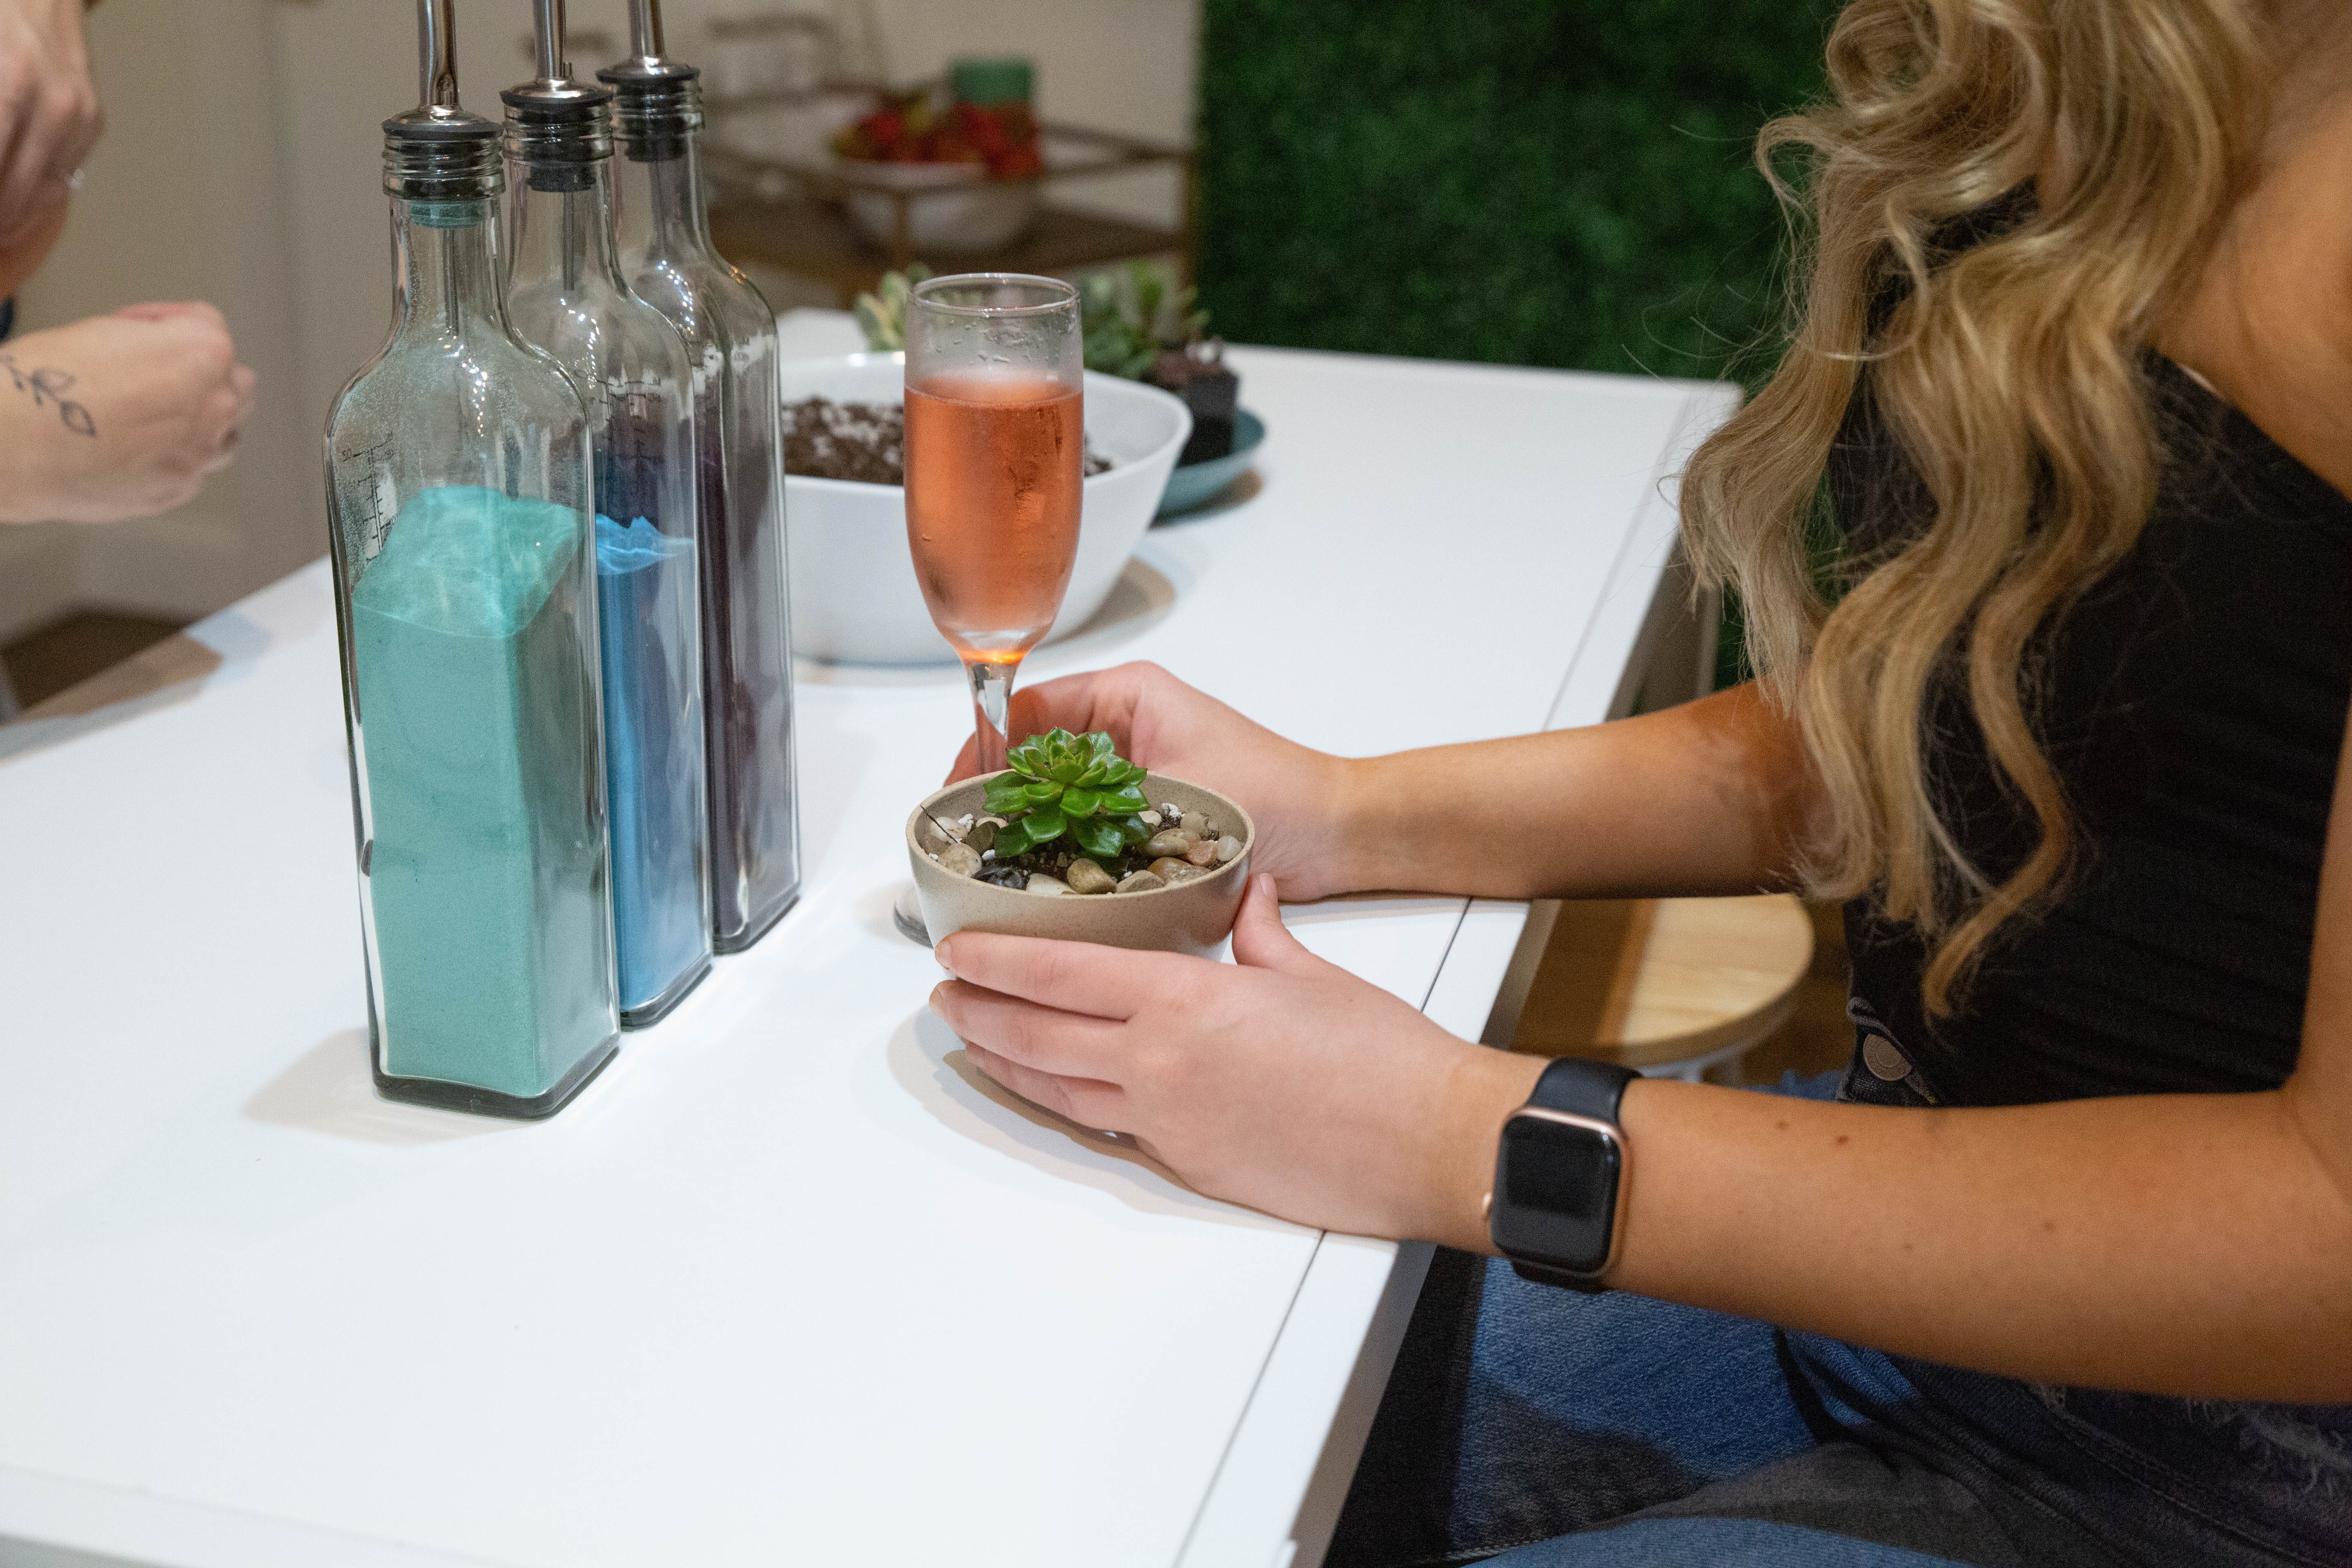 A young woman is sitting at a white table. In front of her is a small succulent in a planter and a glass of sparkling rose as well as supplies to plant more succulents, including jars of brightly colored decorative sand.